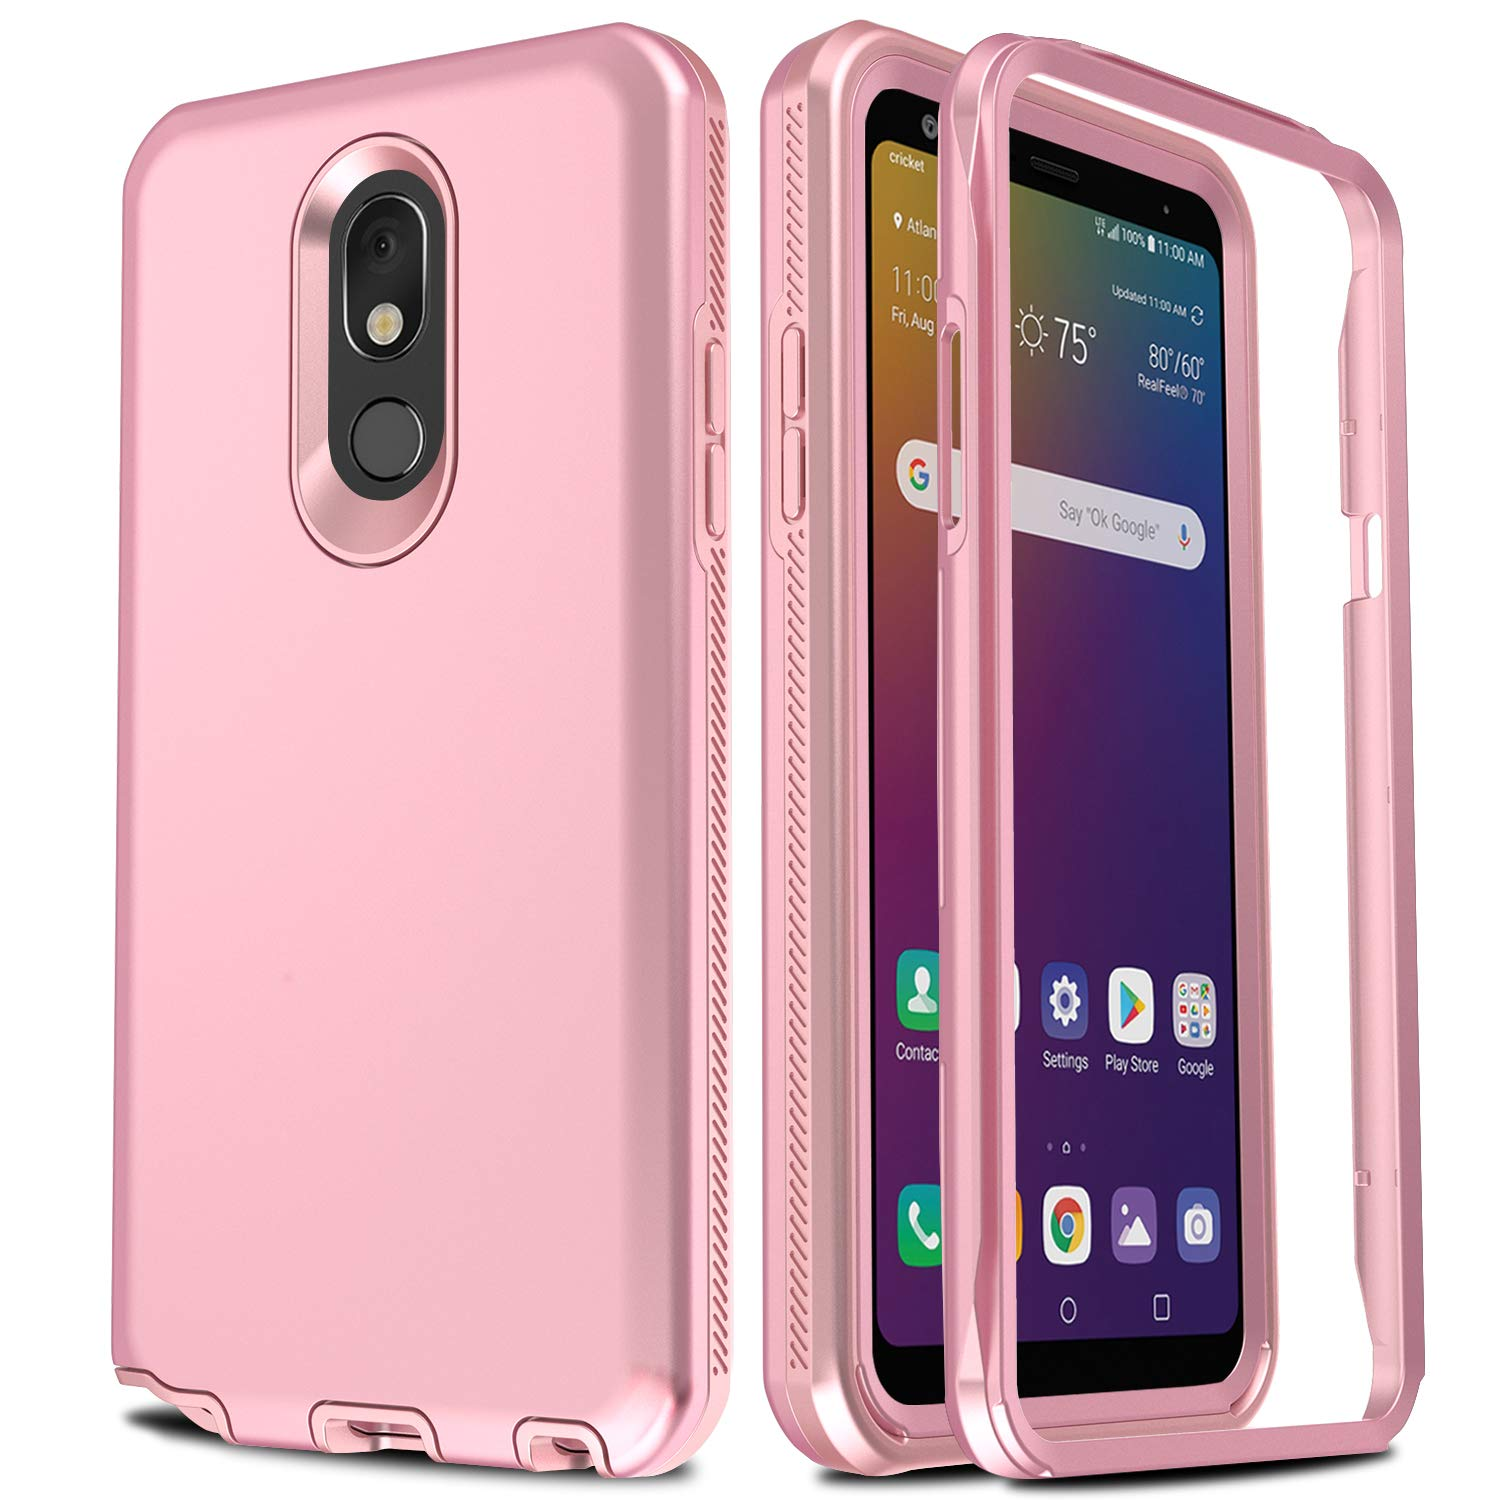 AMENQ Case for LG Stylo 5, LG Stylo 5V Phone Case, Three Layer Full Body Heavy Duty with TPU Bumper and Rugged PC Armor Protective Cover for LG Phone 2019 (Rose Gold)